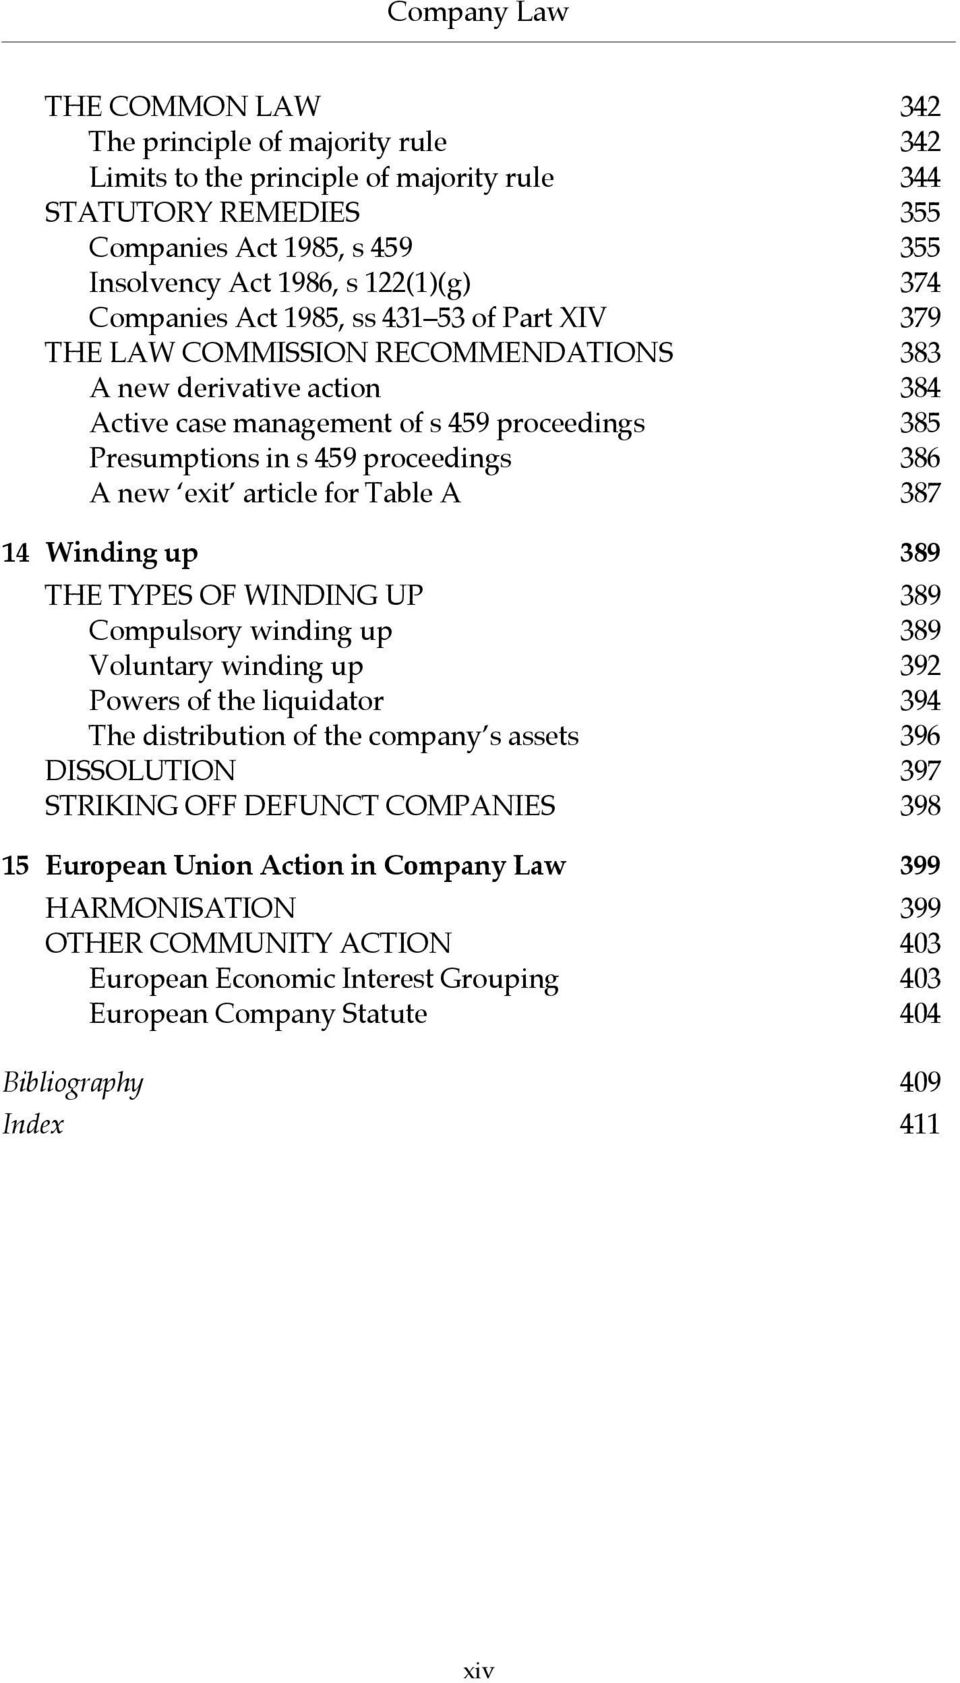 386 A new exit article for Table A 387 14 Winding up 389 THE TYPES OF WINDING UP 389 Compulsory winding up 389 Voluntary winding up 392 Powers of the liquidator 394 The distribution of the company s